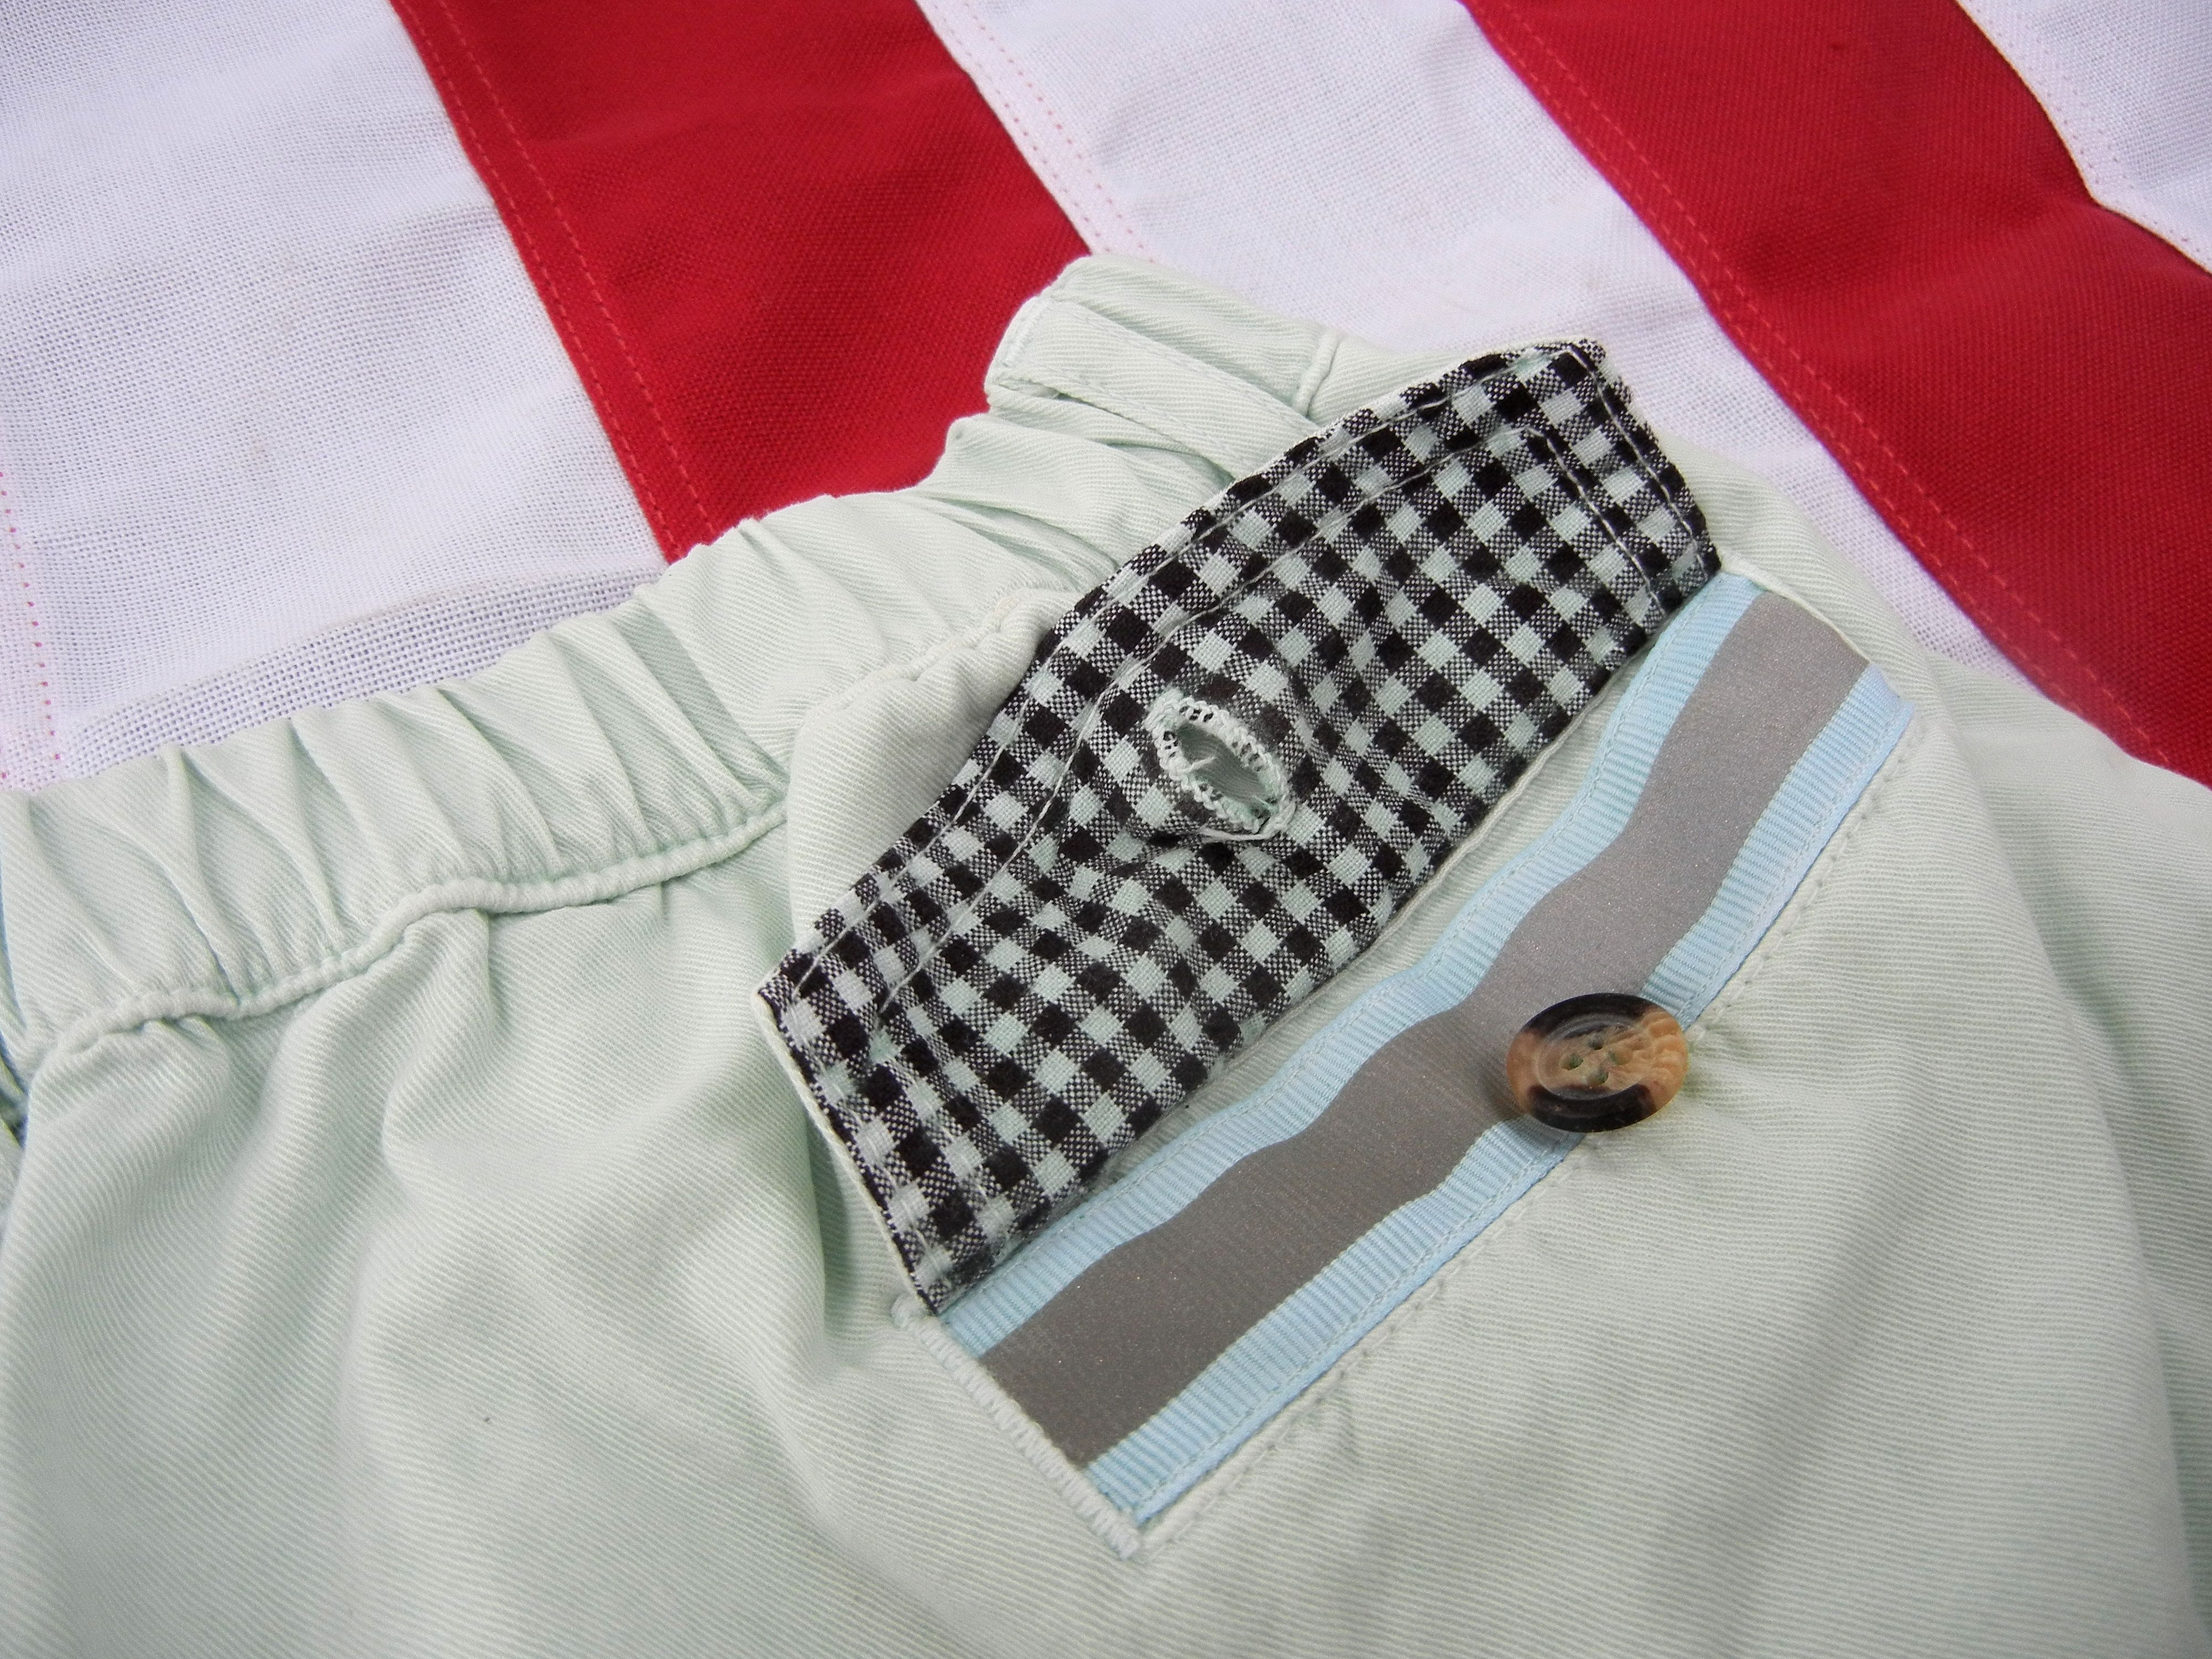 Chubbies Shorts Pocket Detail